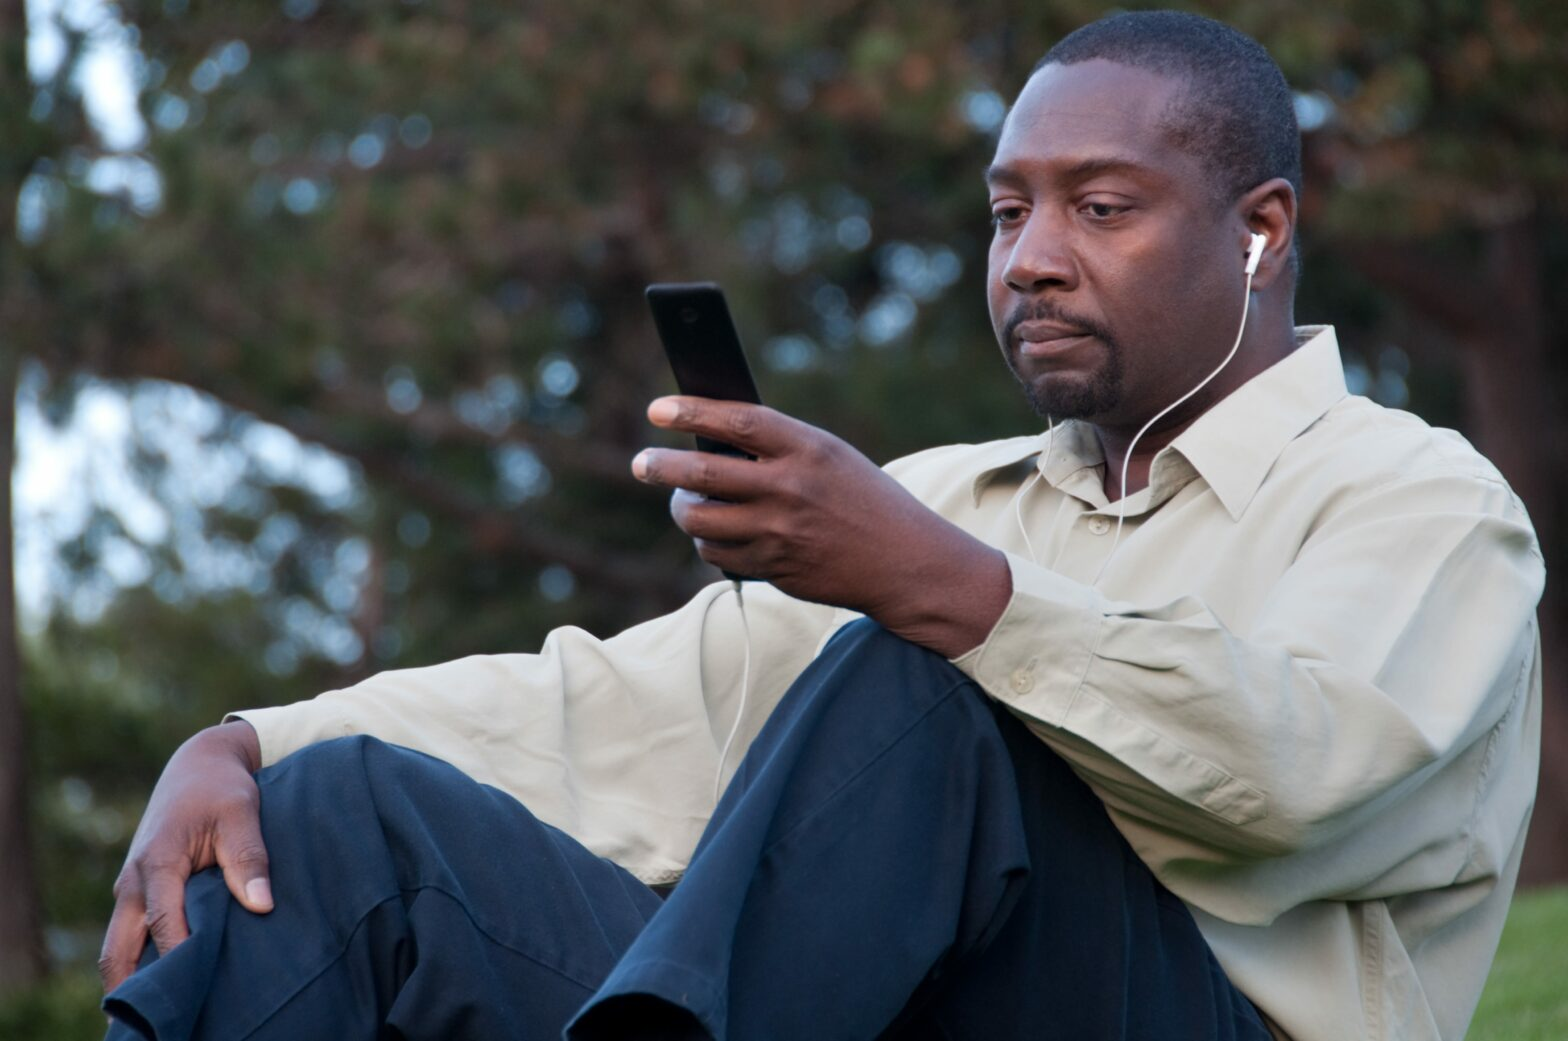 Man sitting with Apple earbuds in his ears